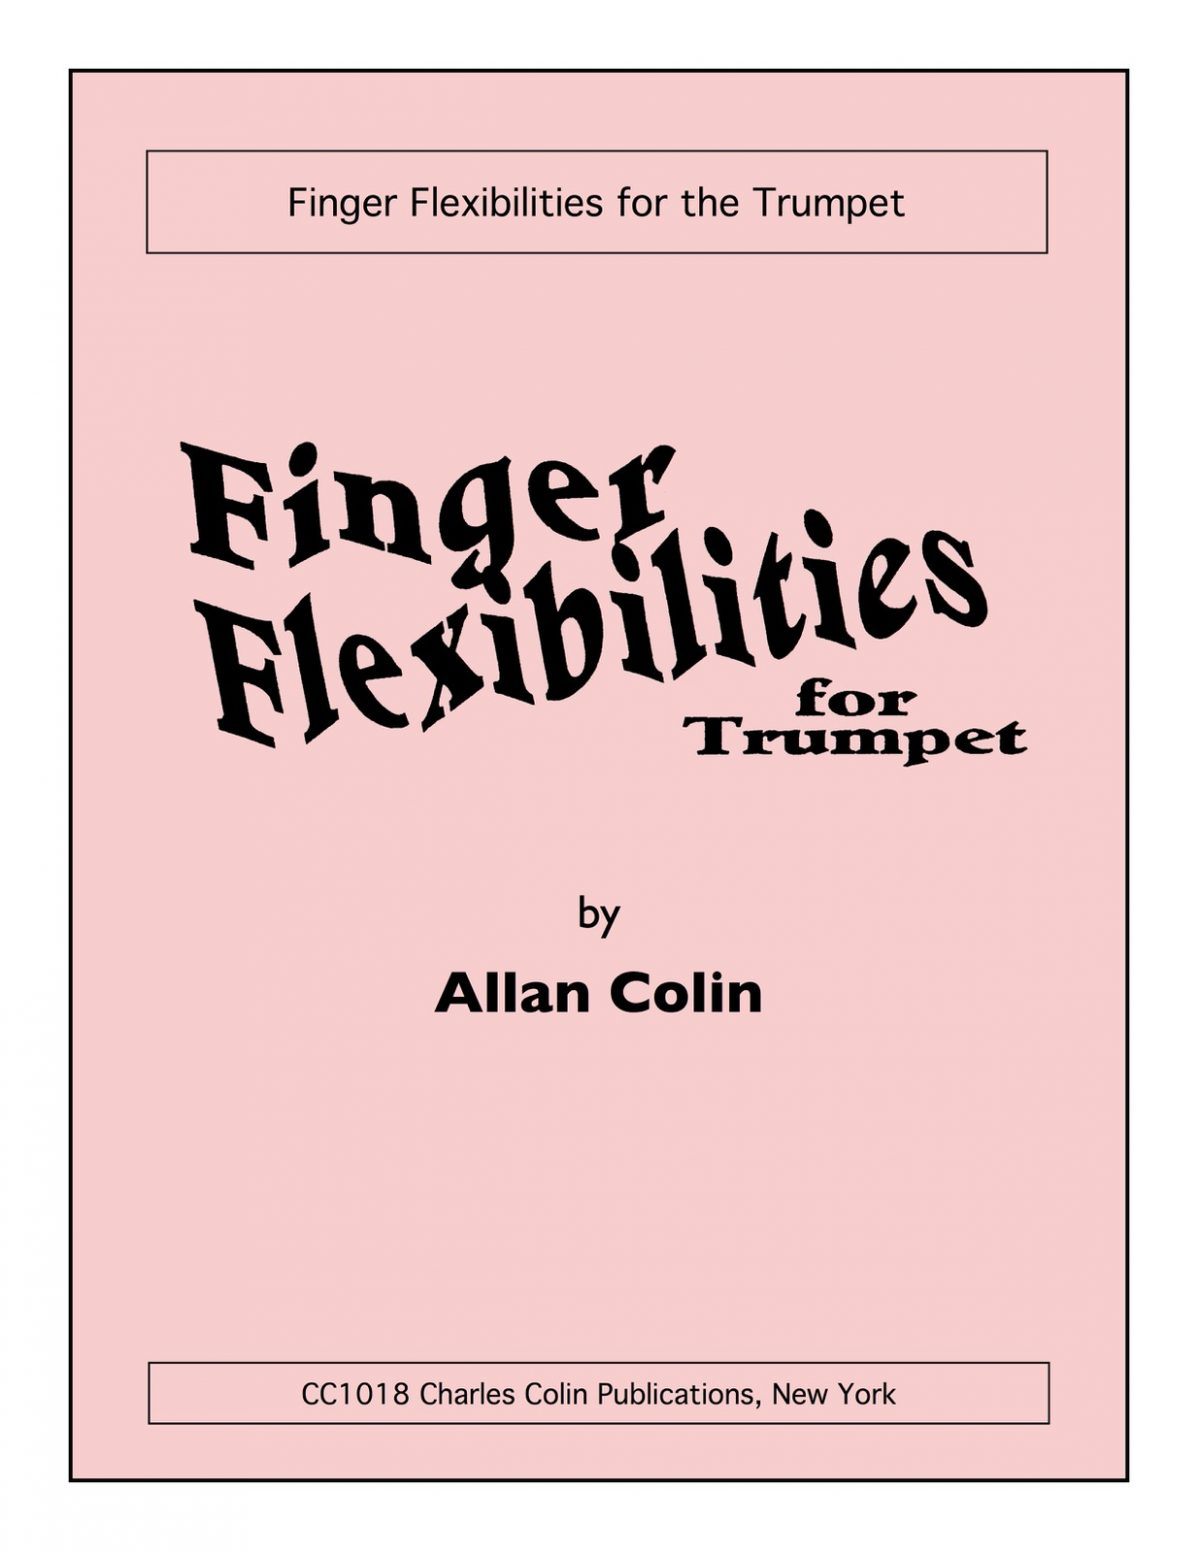 Colin, Finger Flexibilities for Trumpet-p01